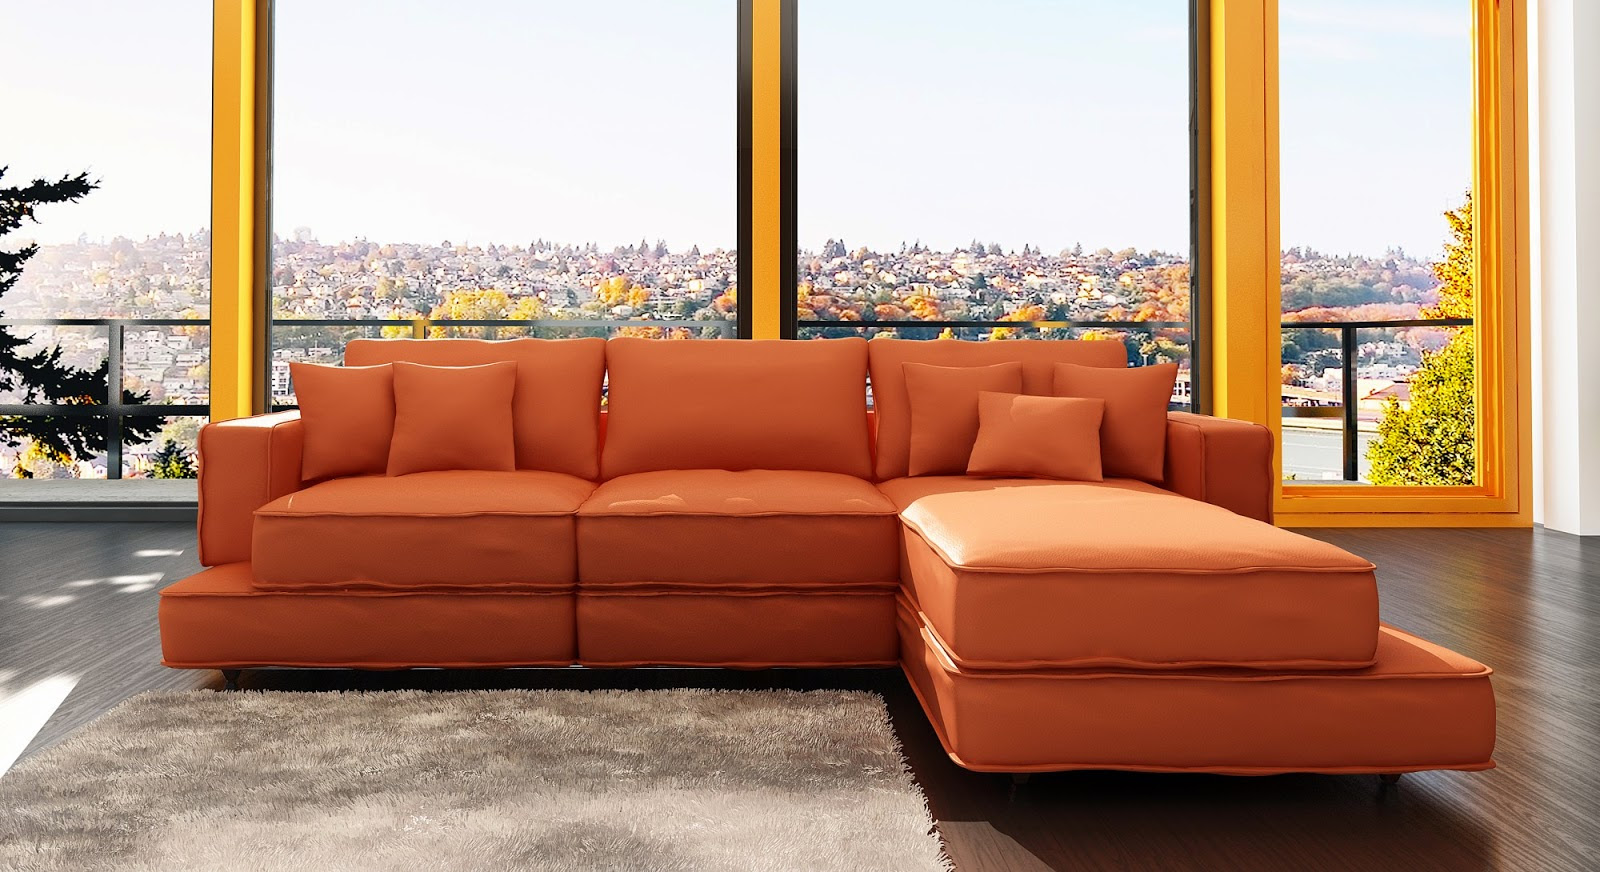 Living Room With Orange Couch Nagpurentrepreneurs